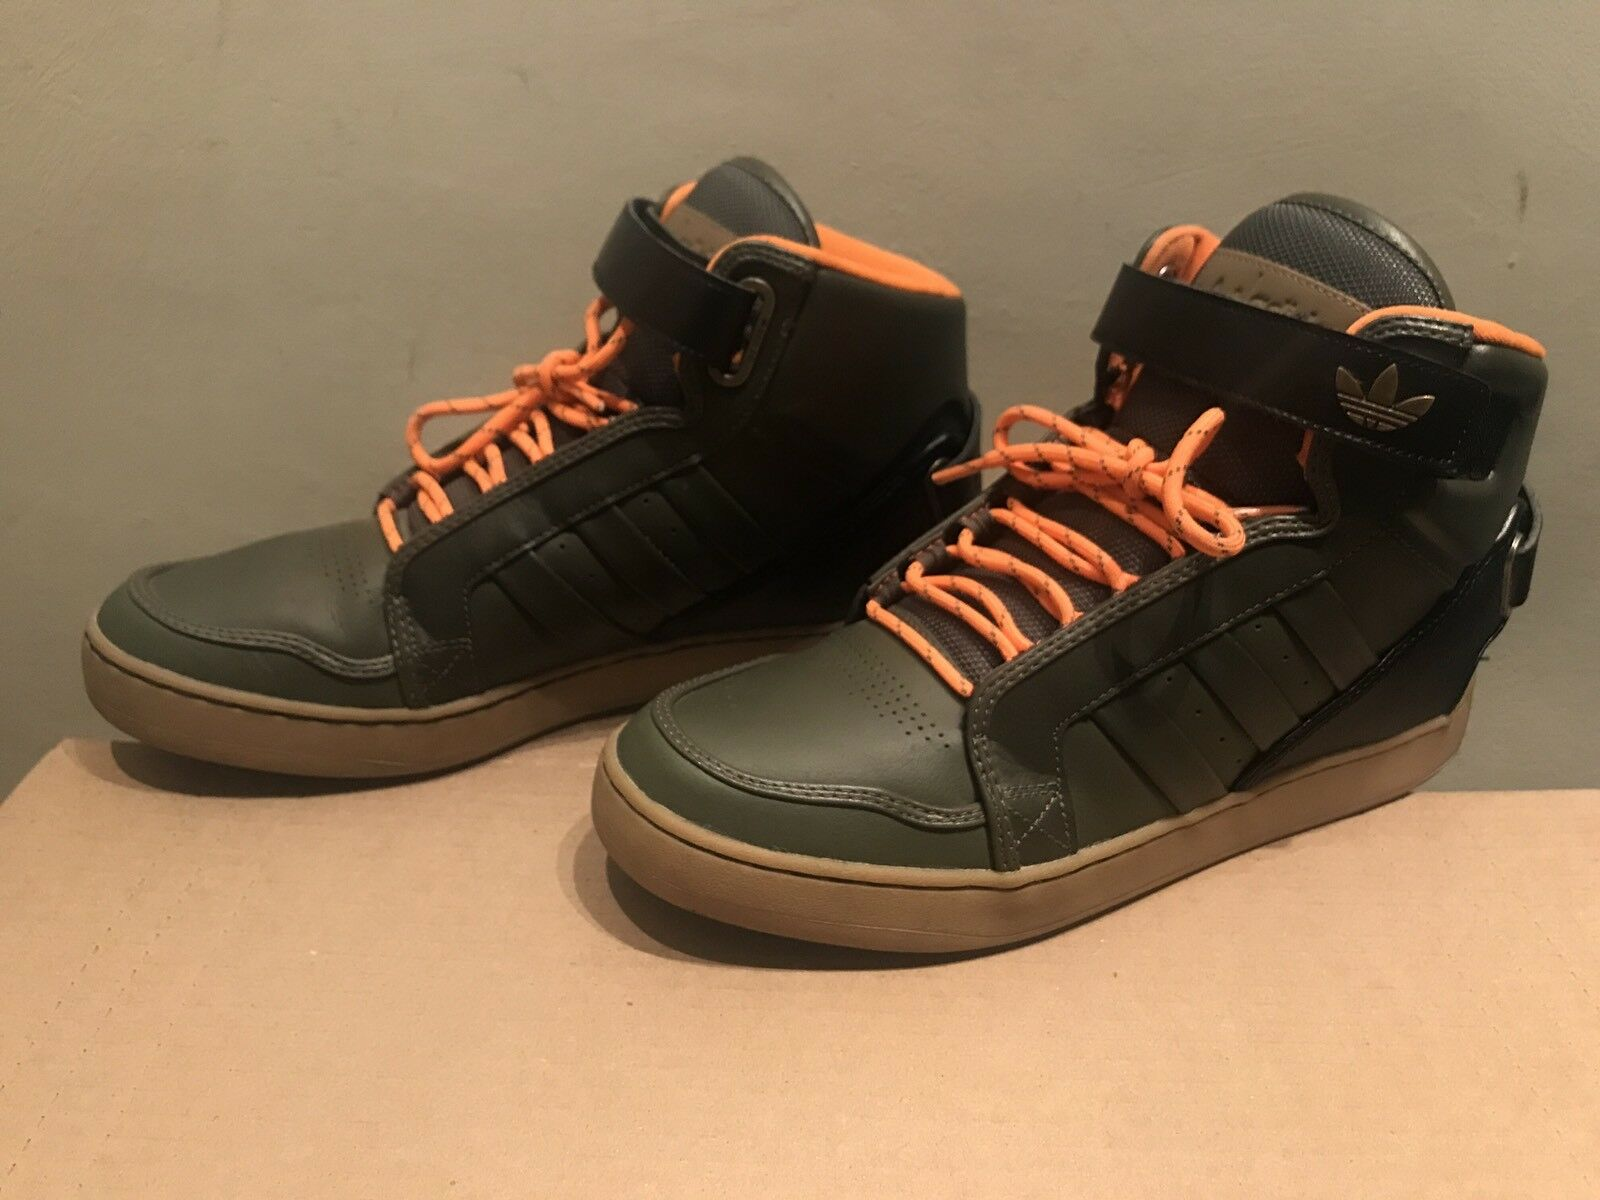 RARE 2012 Adidas High top Olive/Black & Orange SZ 9.5 Sneakers Men's Shoes